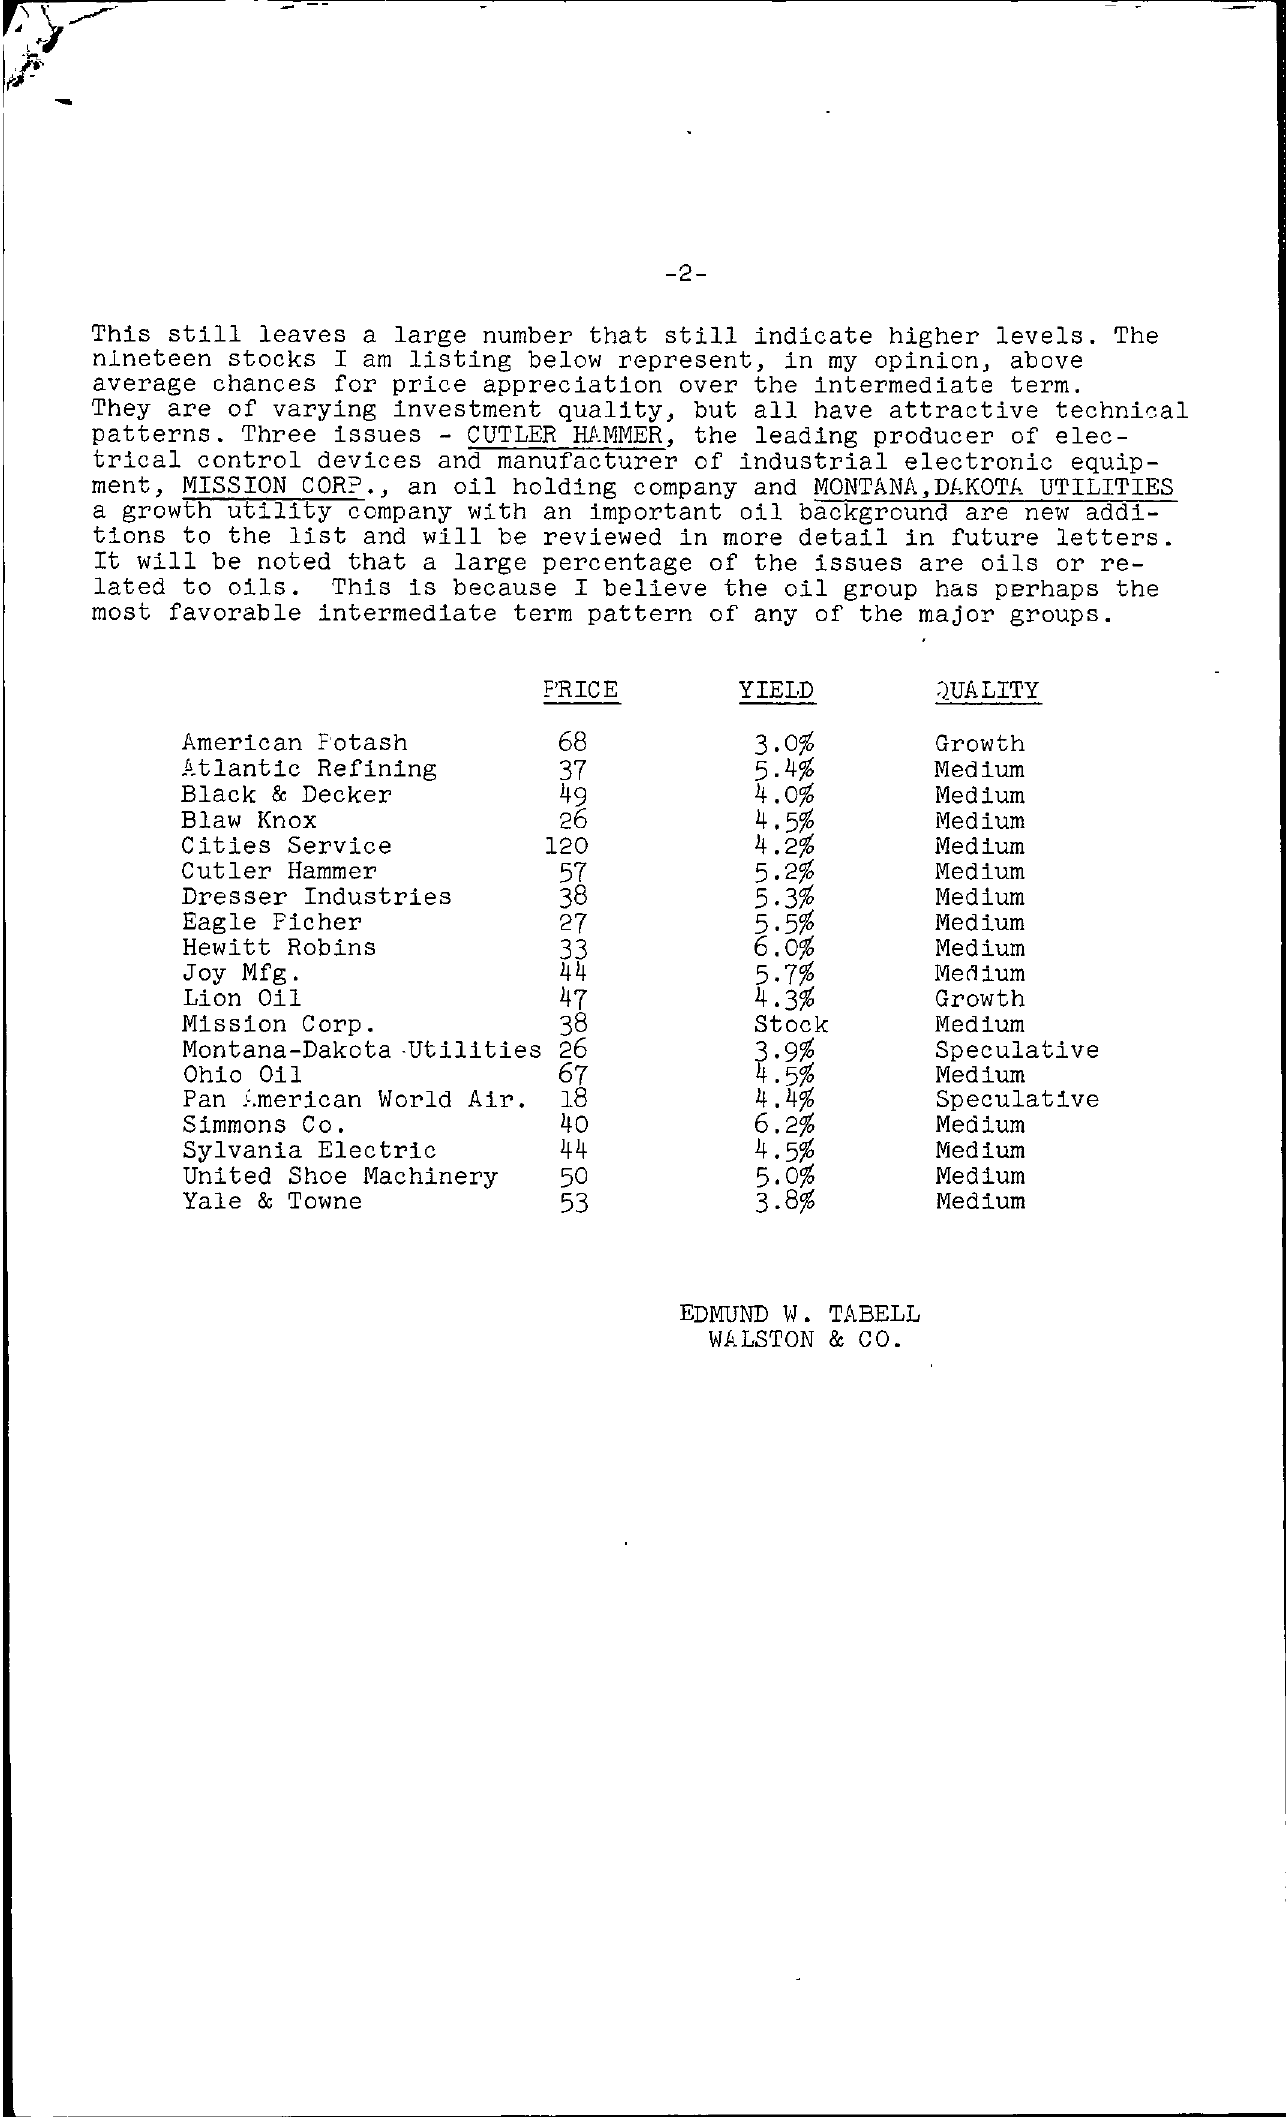 Tabell's Market Letter - January 07, 1955 page 2